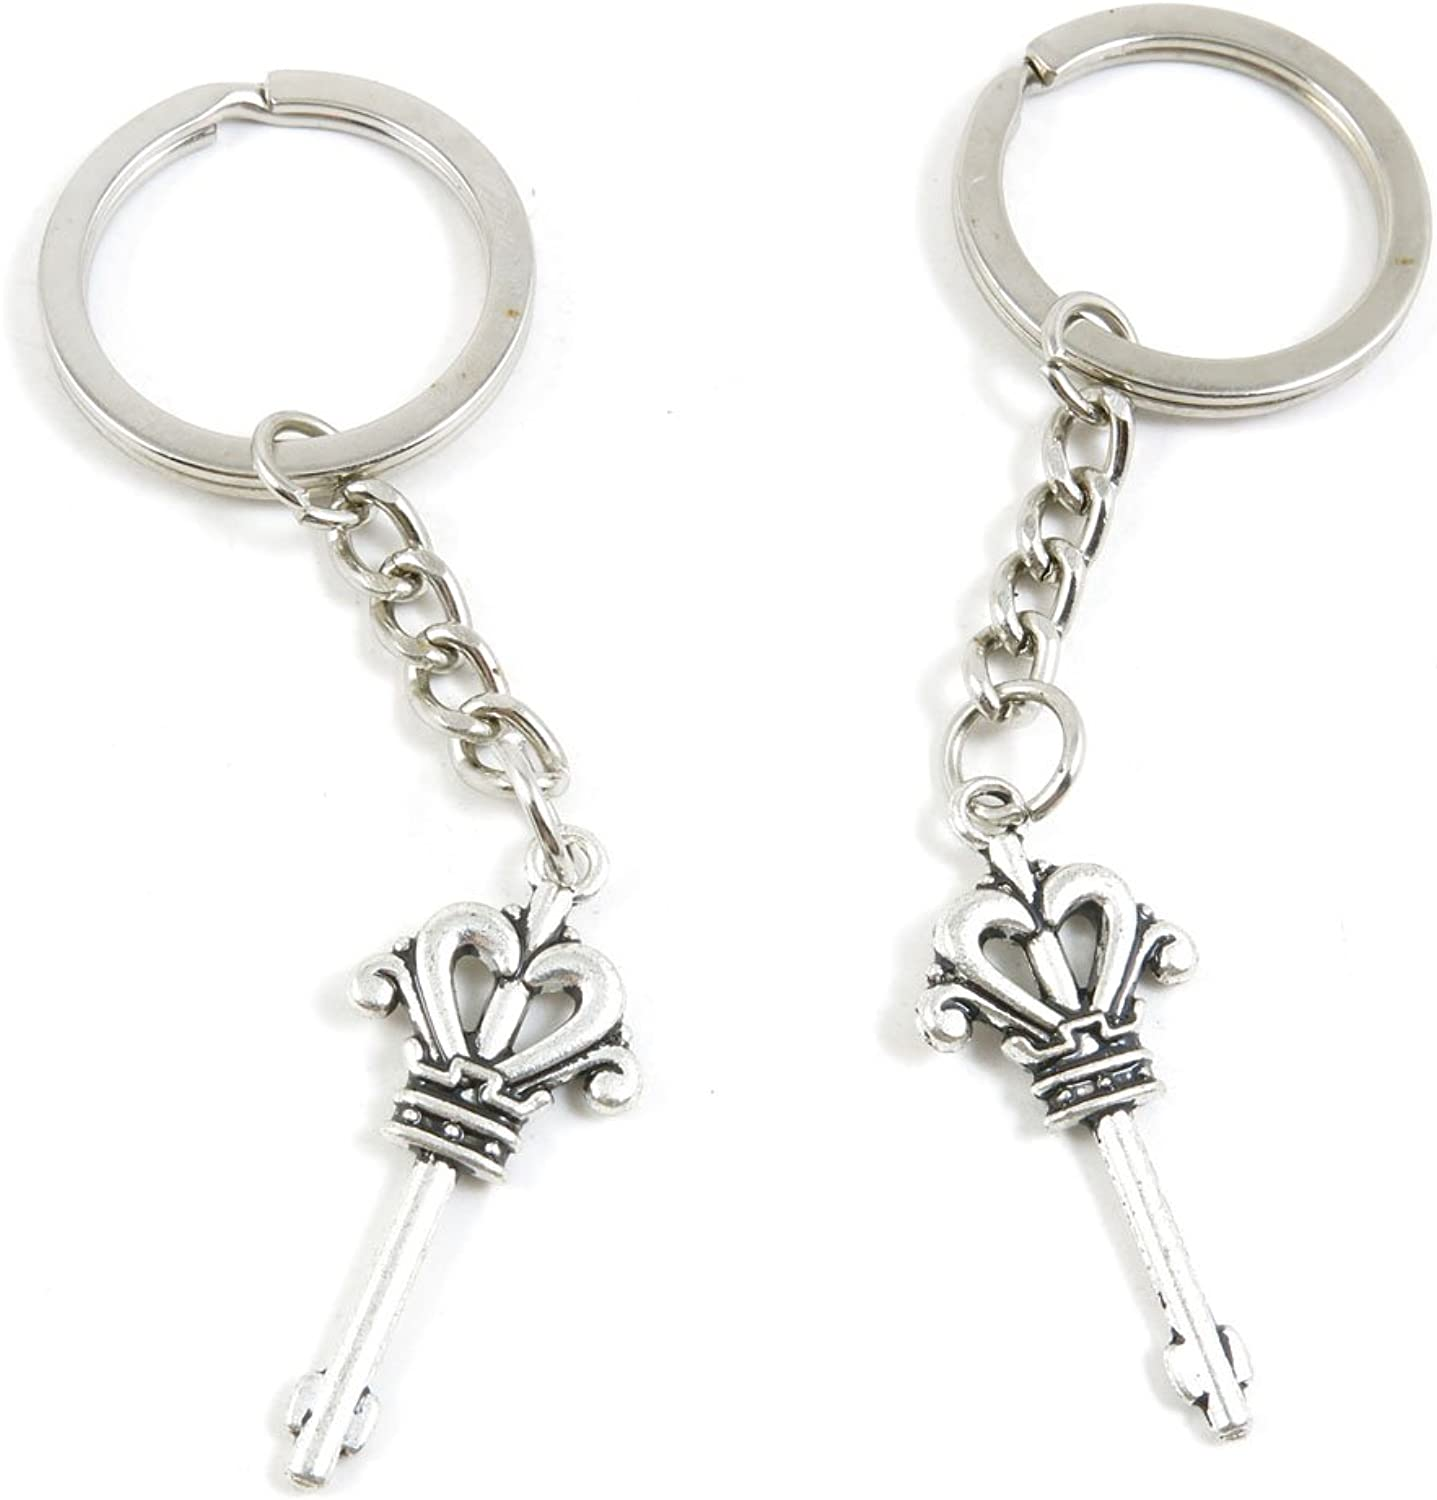 100 Pieces Keychain Keyring Door Car Key Chain Ring Tag Charms Bulk Supply Jewelry Making Clasp Findings G6FG0G Crown Skeleton Key